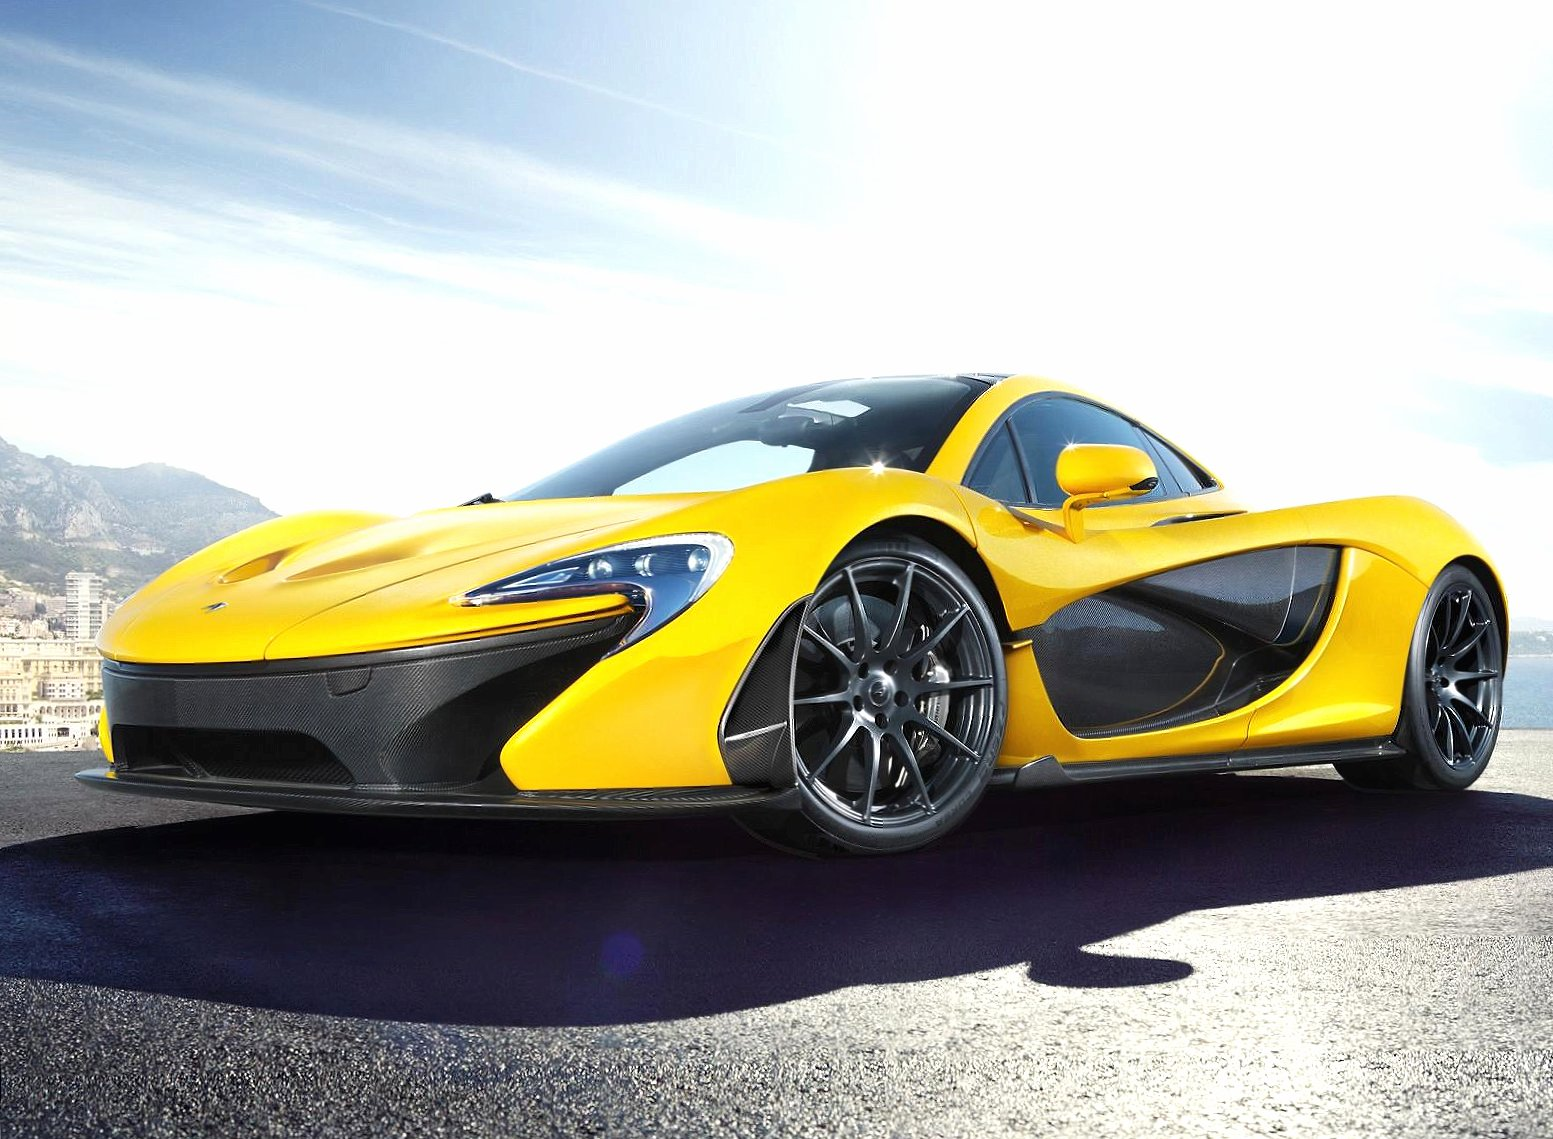 mclaren p1 3 wallpapers HD quality